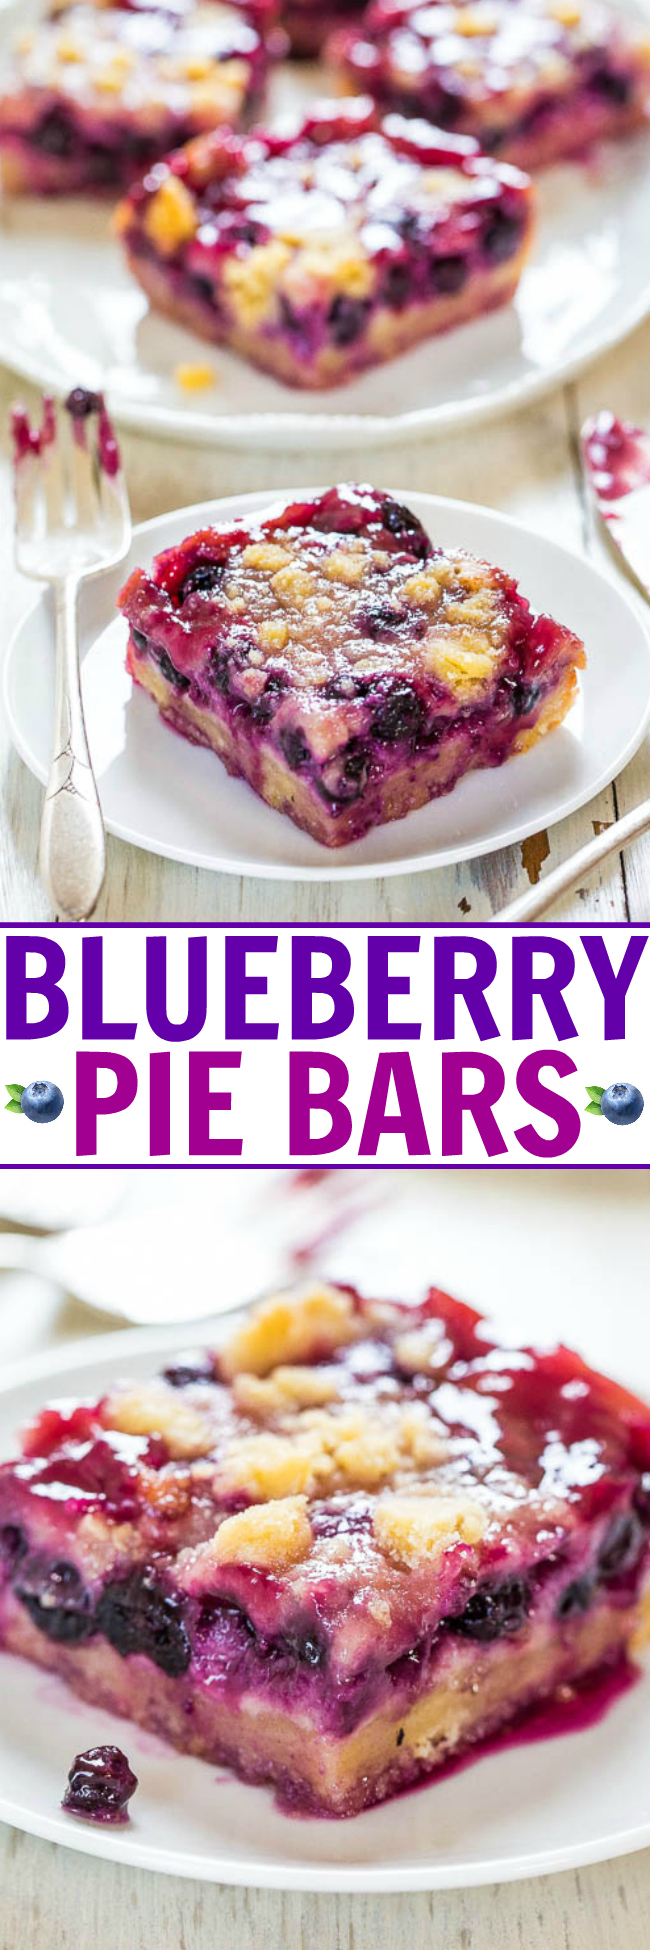 Blueberry Pie Bars - These pie bars are one of my all-time favorite (frozen) blueberry recipes! They have the flavors you love in a blueberry pie, but you don't have to mess around with homemade pie crust. If desired, you can easily make these with fresh blueberries instead of frozen!